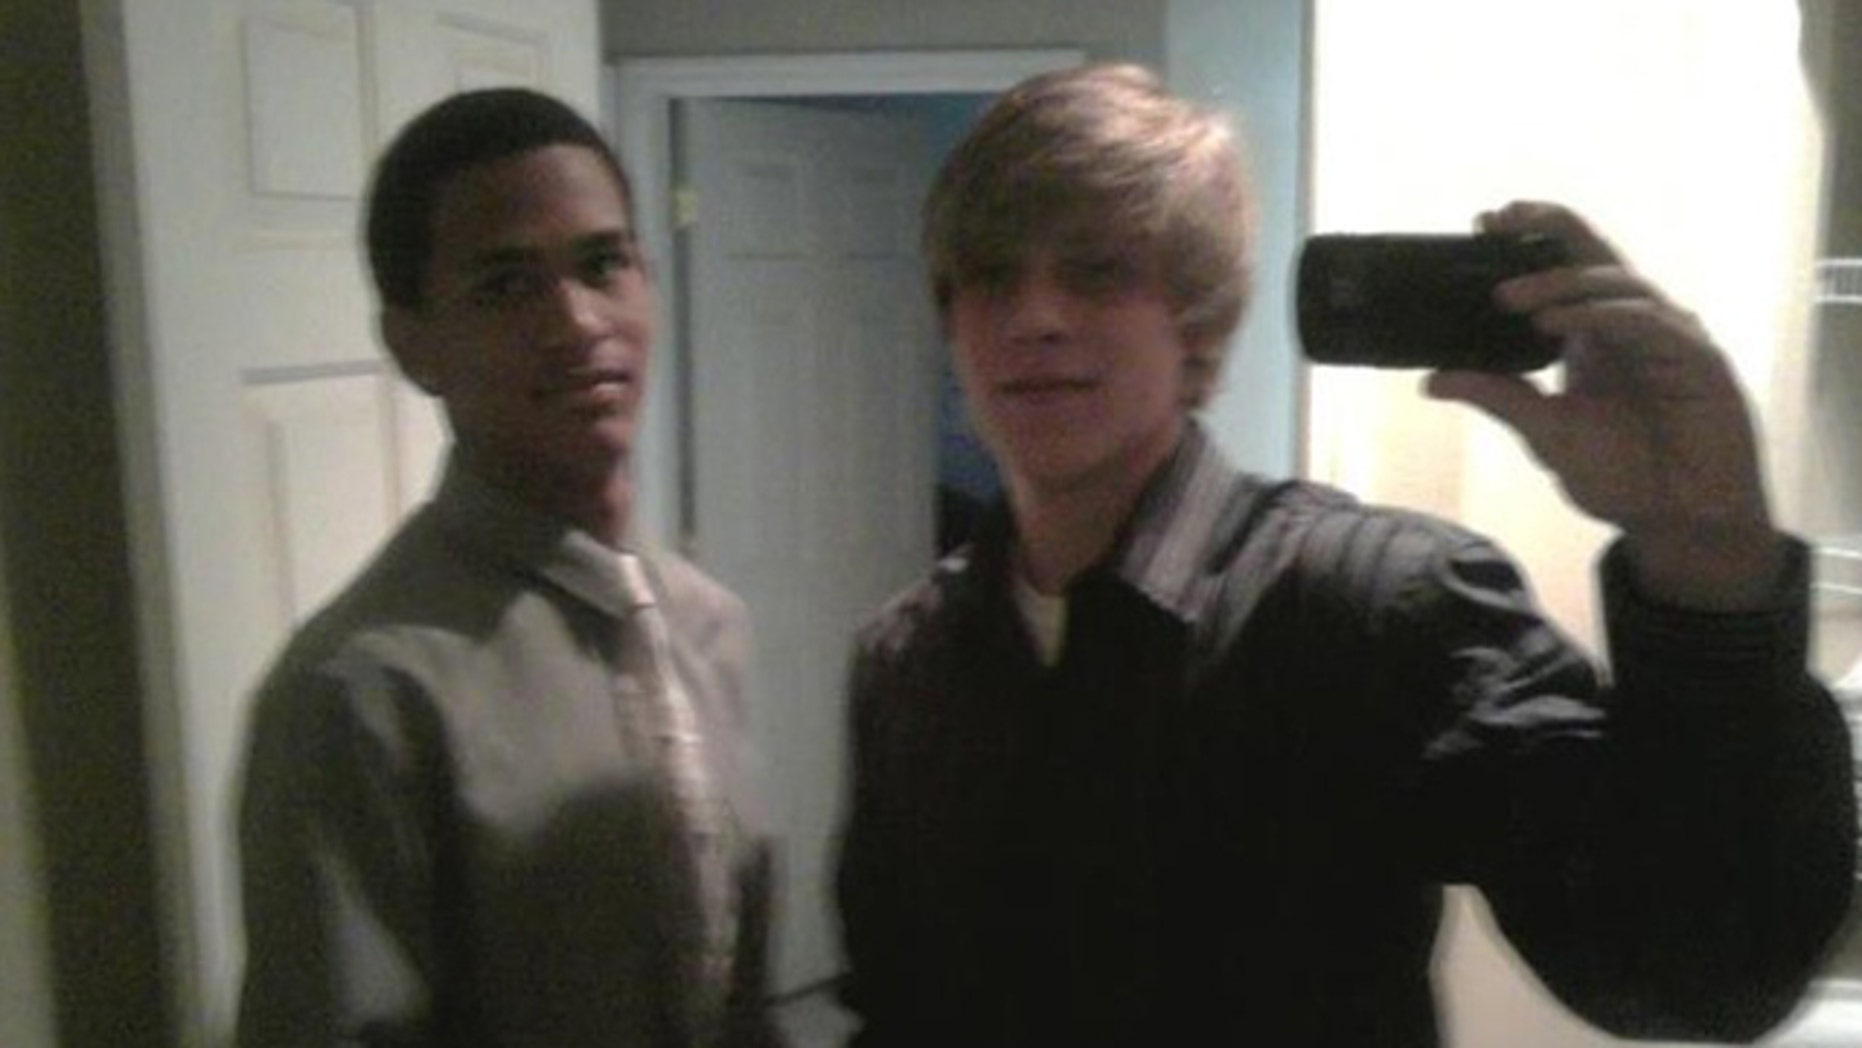 The bodies of Nicholas Presha, 16 (left), and Jeremy Stewart, 18 were discovered burned along Cady Way Trail in East Orange County.